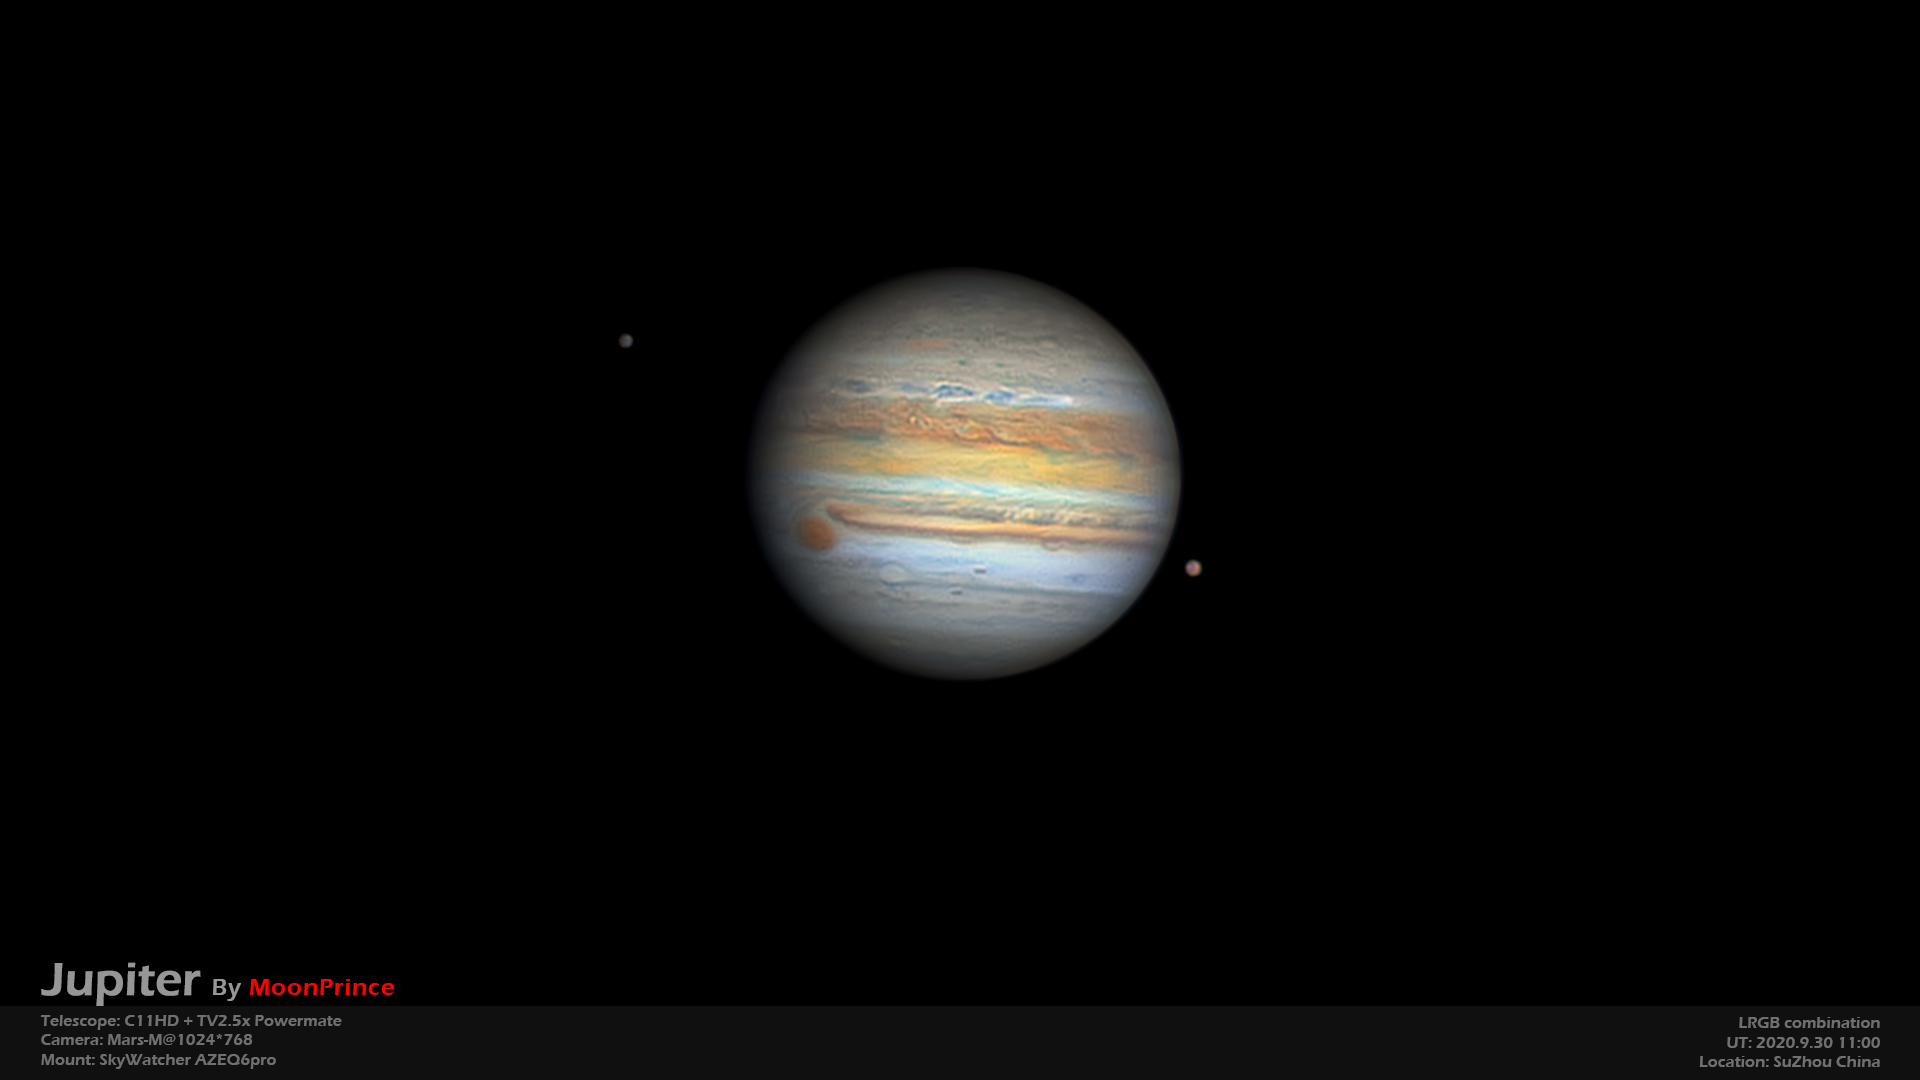 Two moons around Jupiter with RED spot, C11HD+Mars-M camera